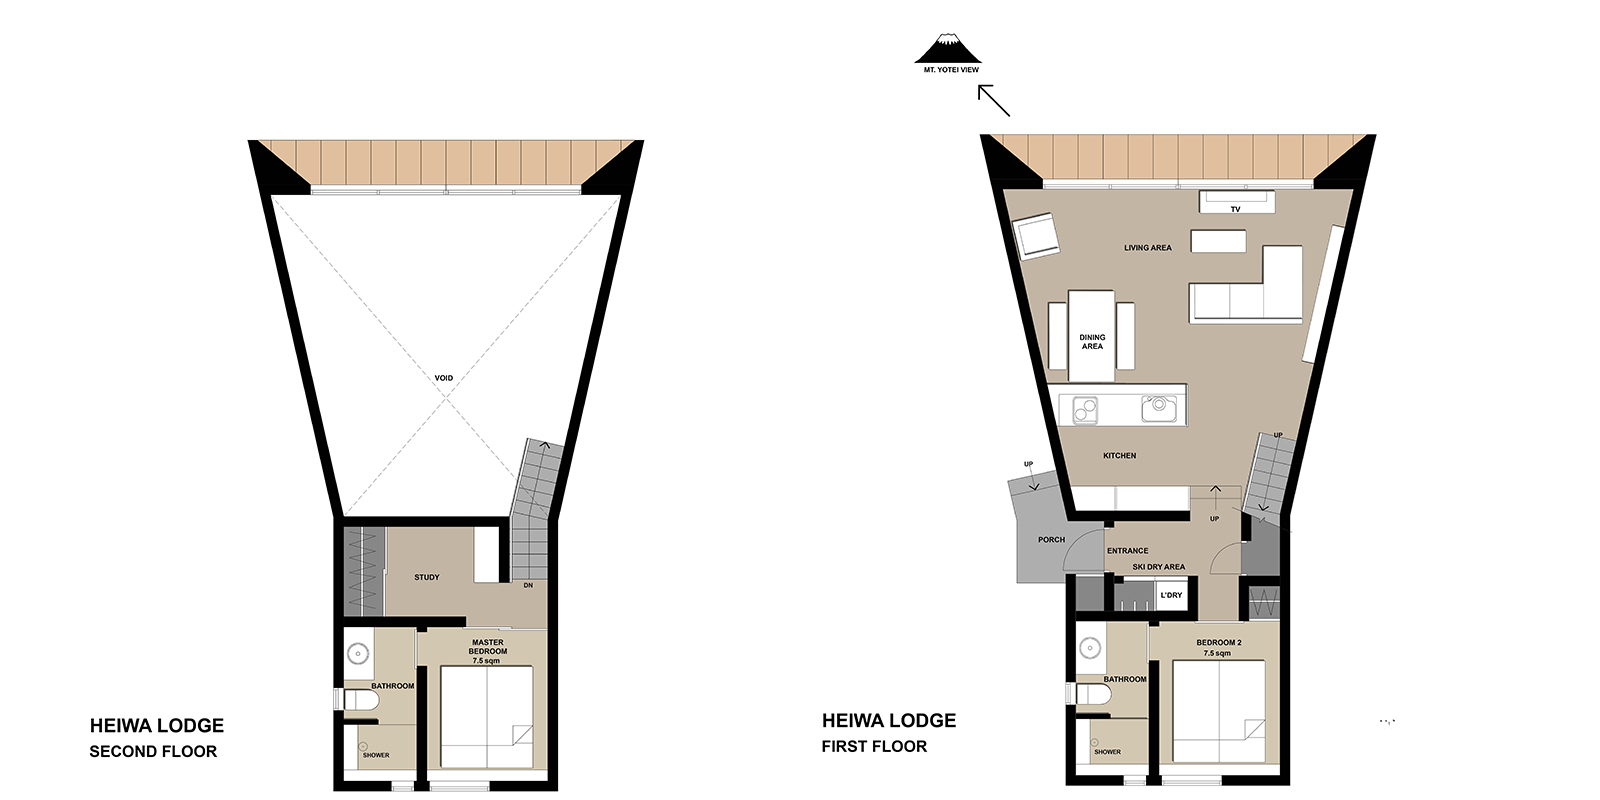 Heiwa Lodge Floorplan | HIrafu, Niseko